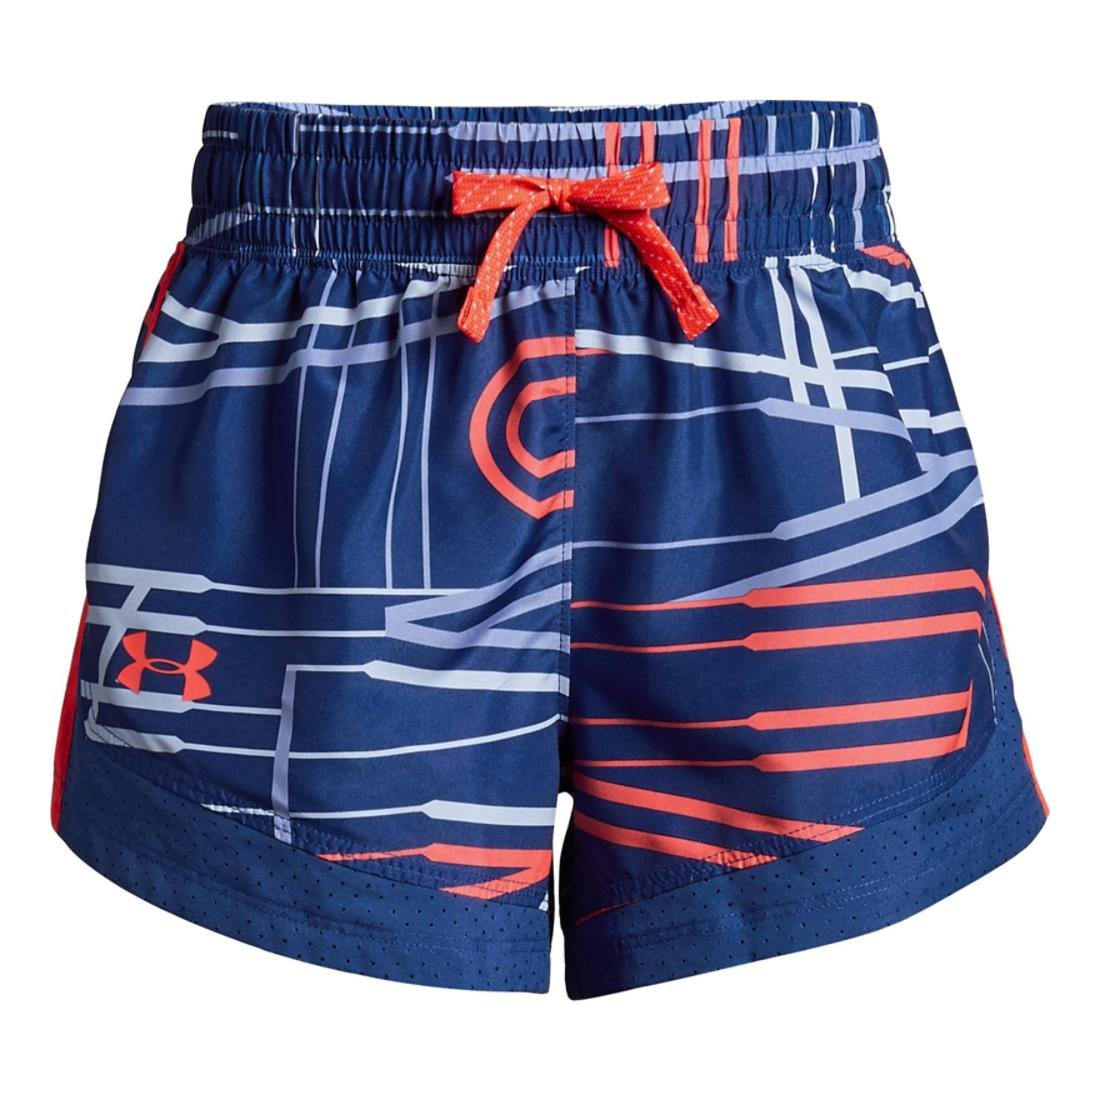 Girl's Under Armour Girls' Sprint novelty short, Formation Blue /Neon Coral, Youth X-Small by Under Armour